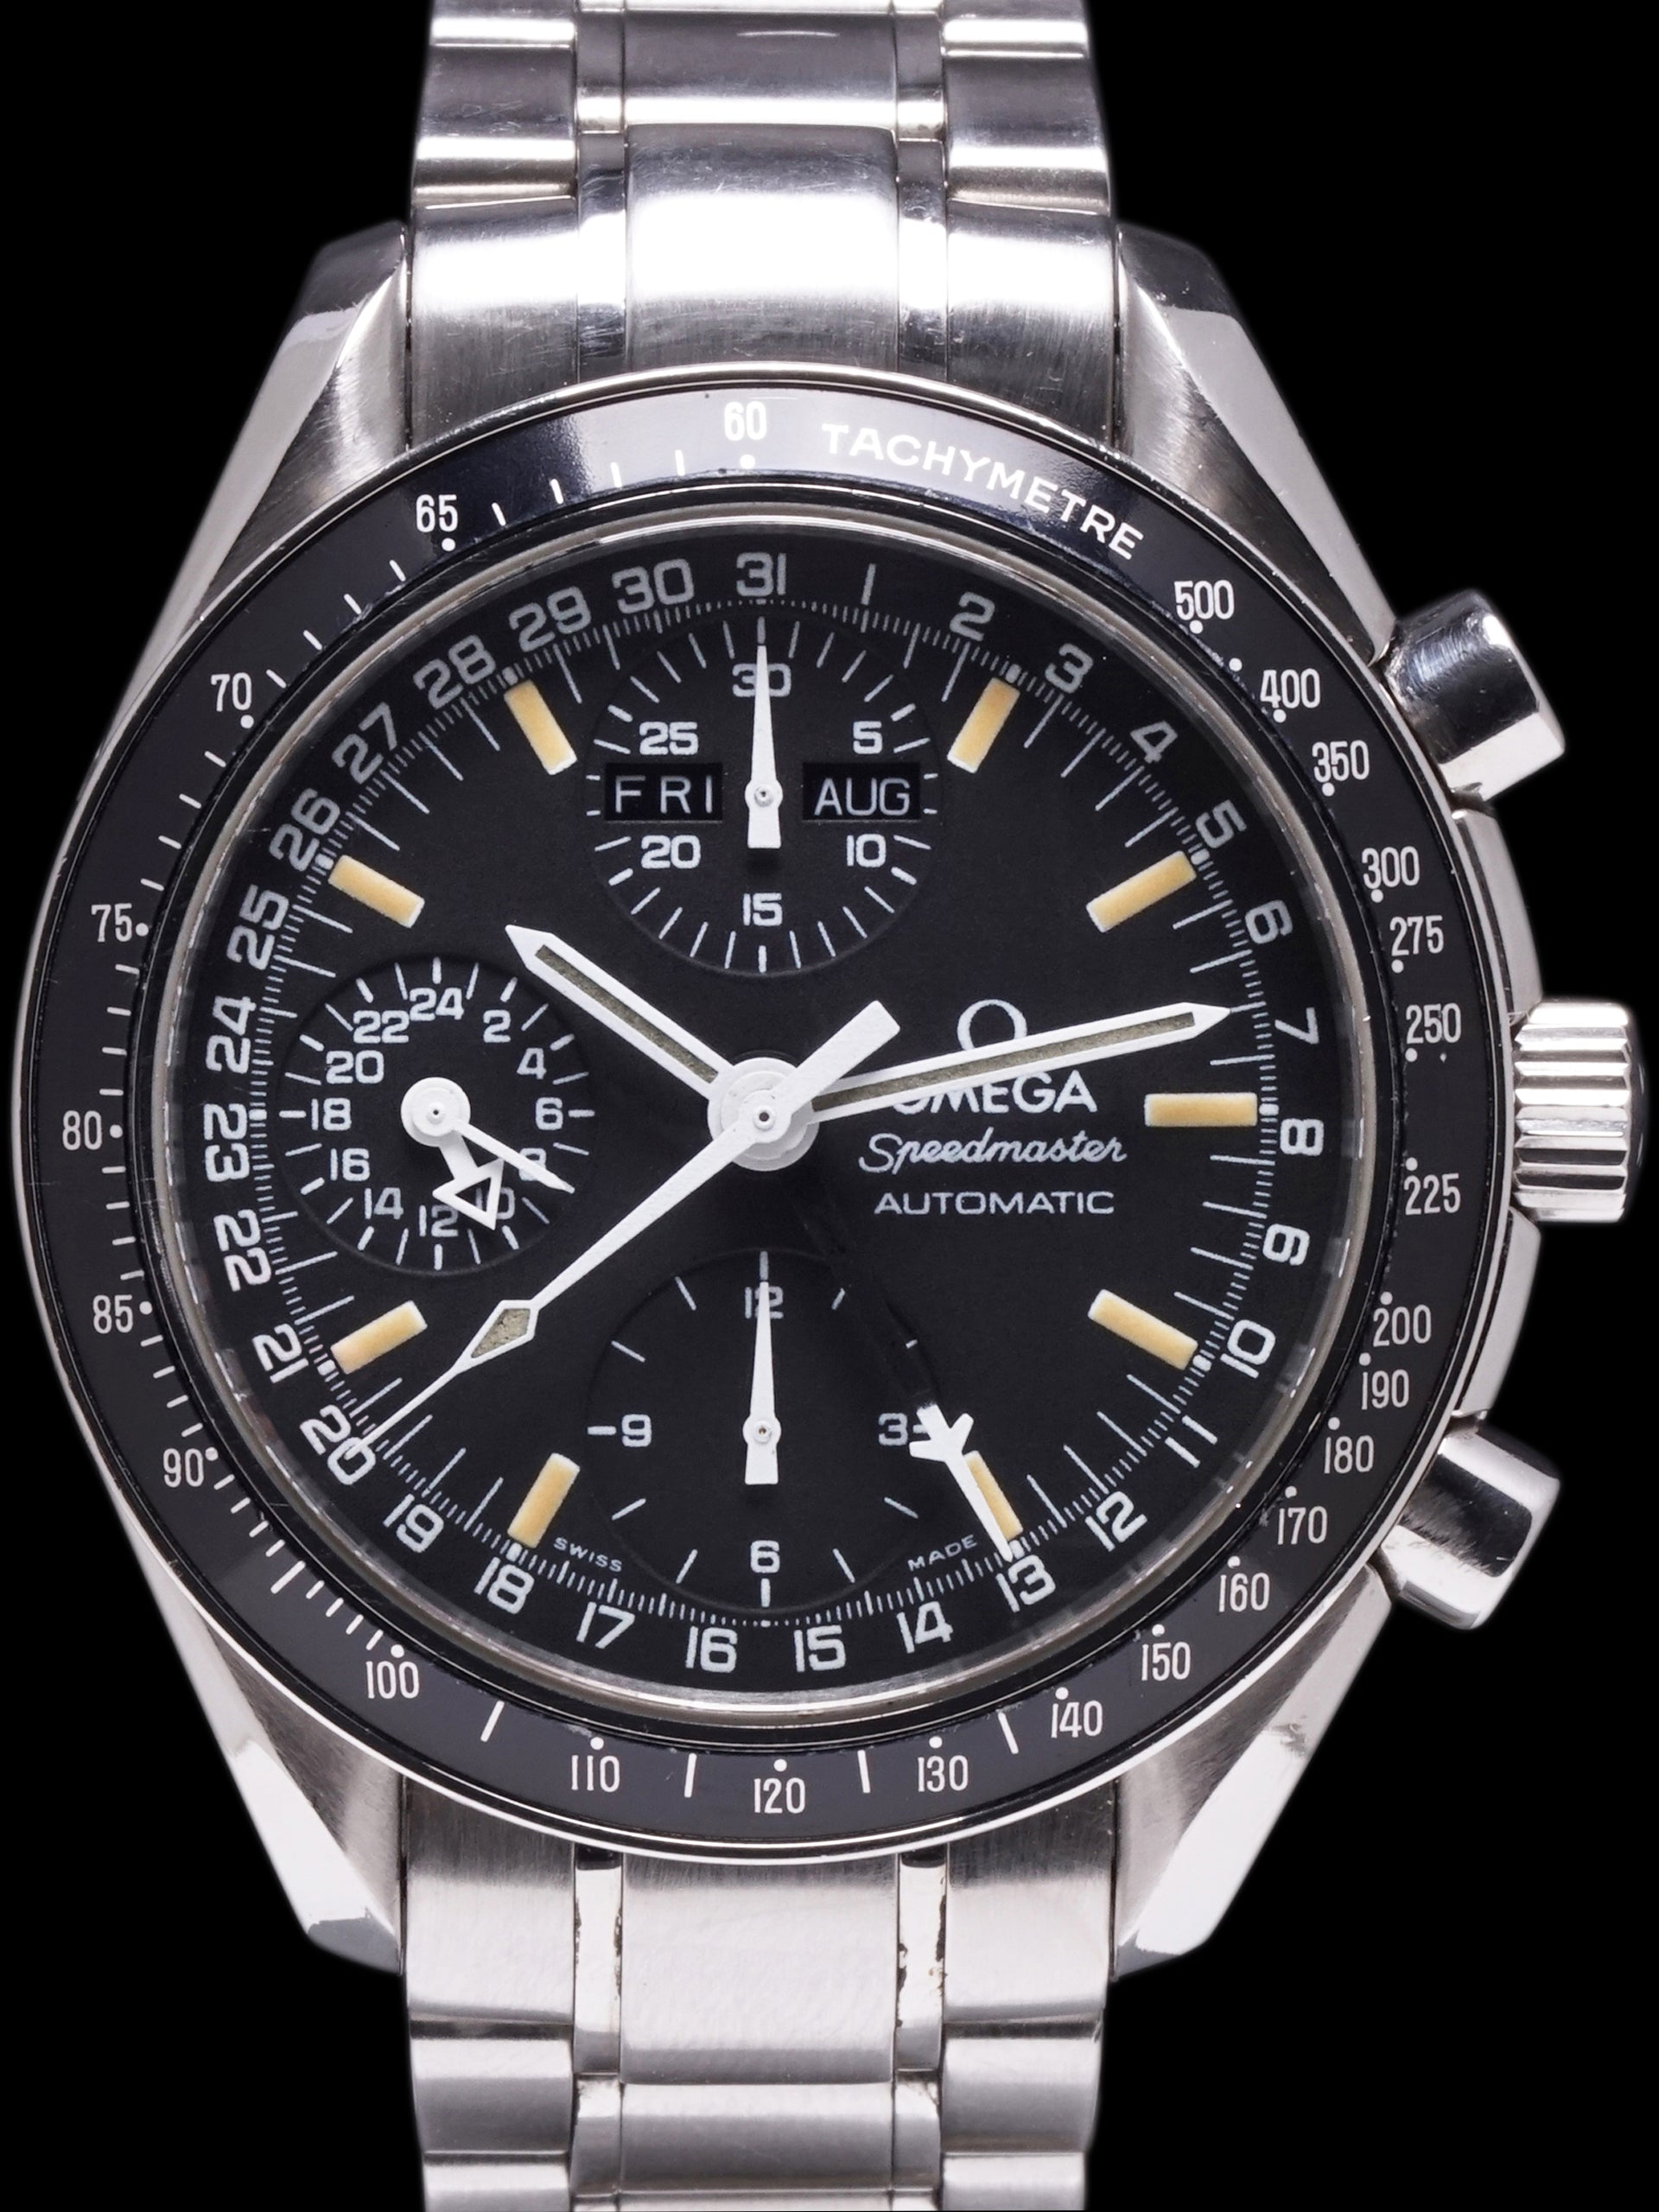 1995 OMEGA Speedmaster Automatic (Ref. 175.0084) MARK 40